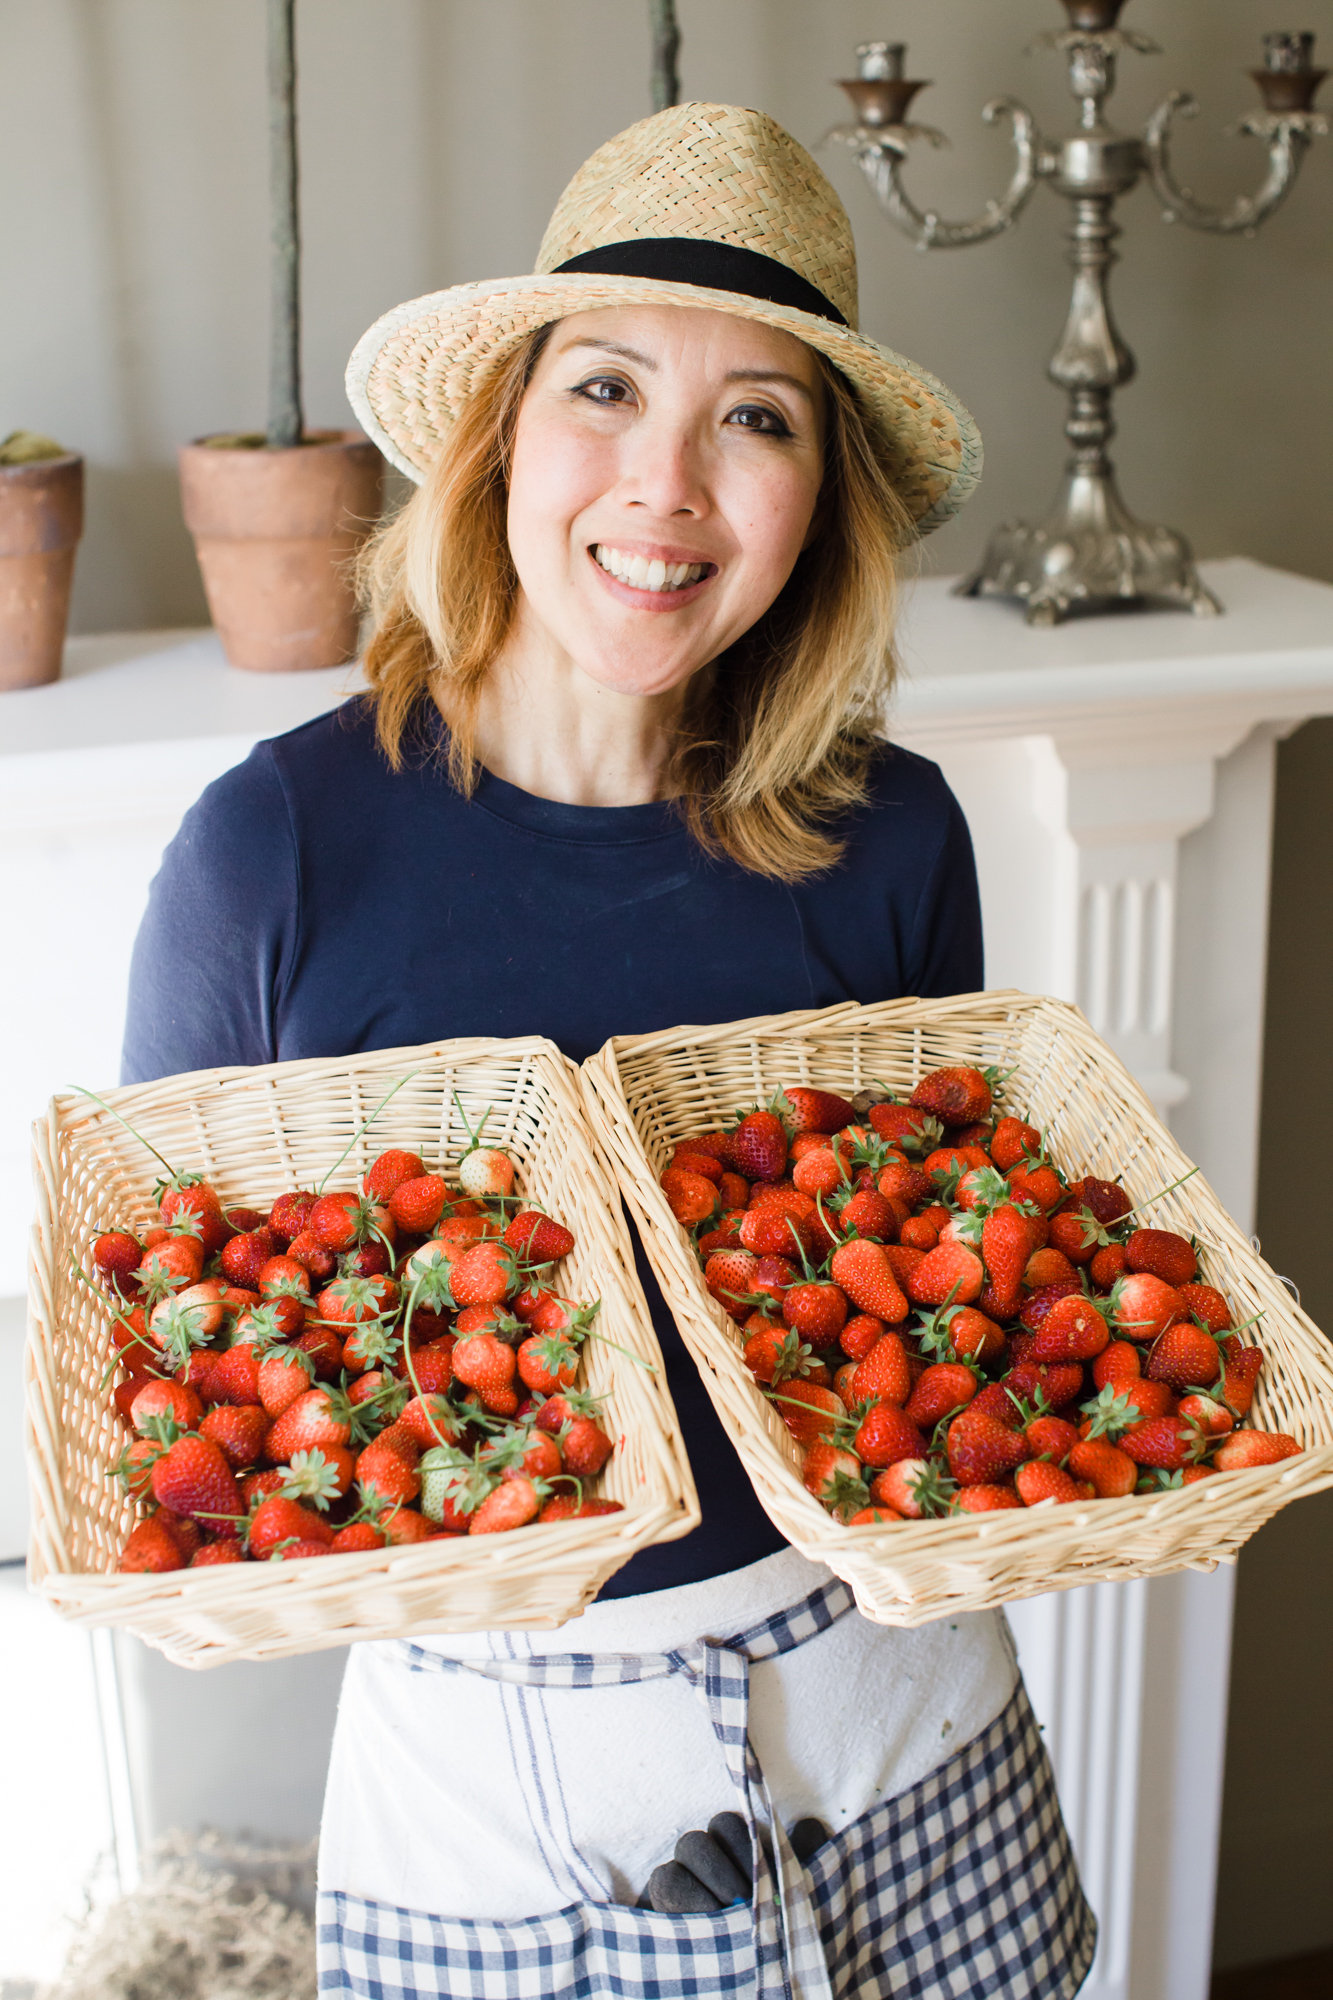 Farmhouse strawberries